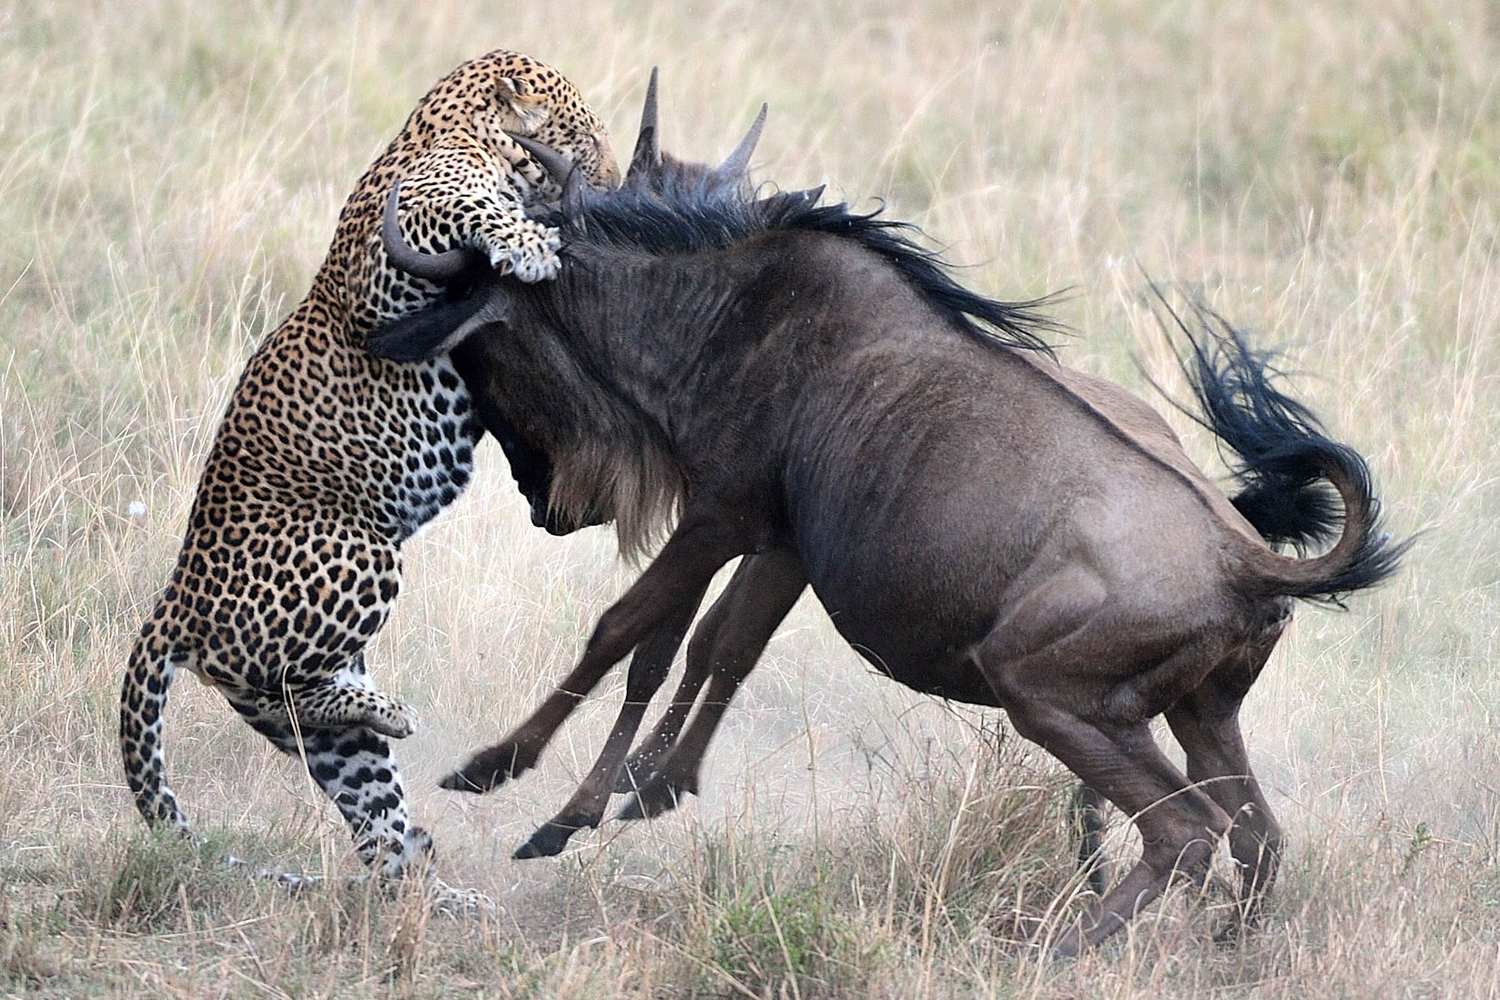 Photos show dramatic fight back by wildebeests as a